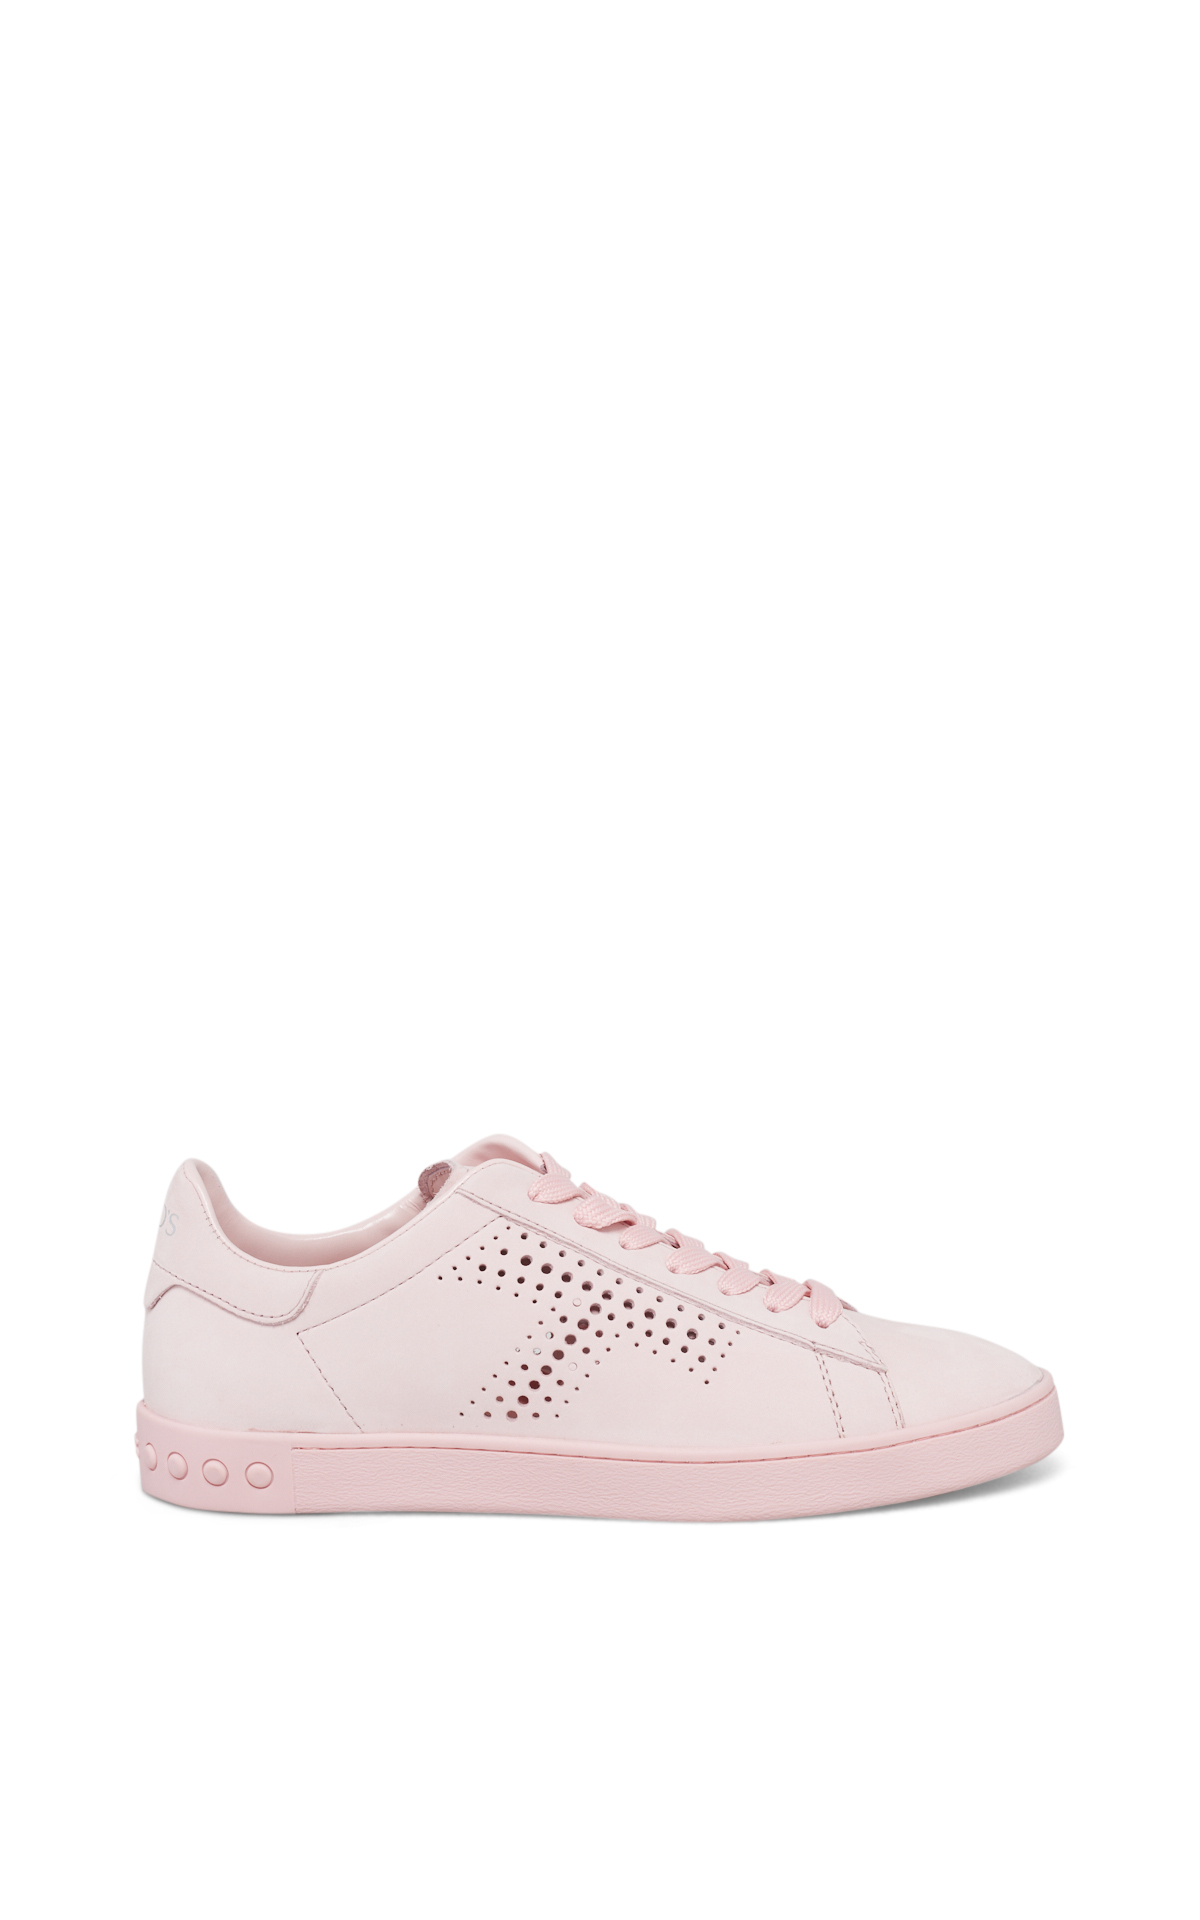 Tod's Women's pink sneakers